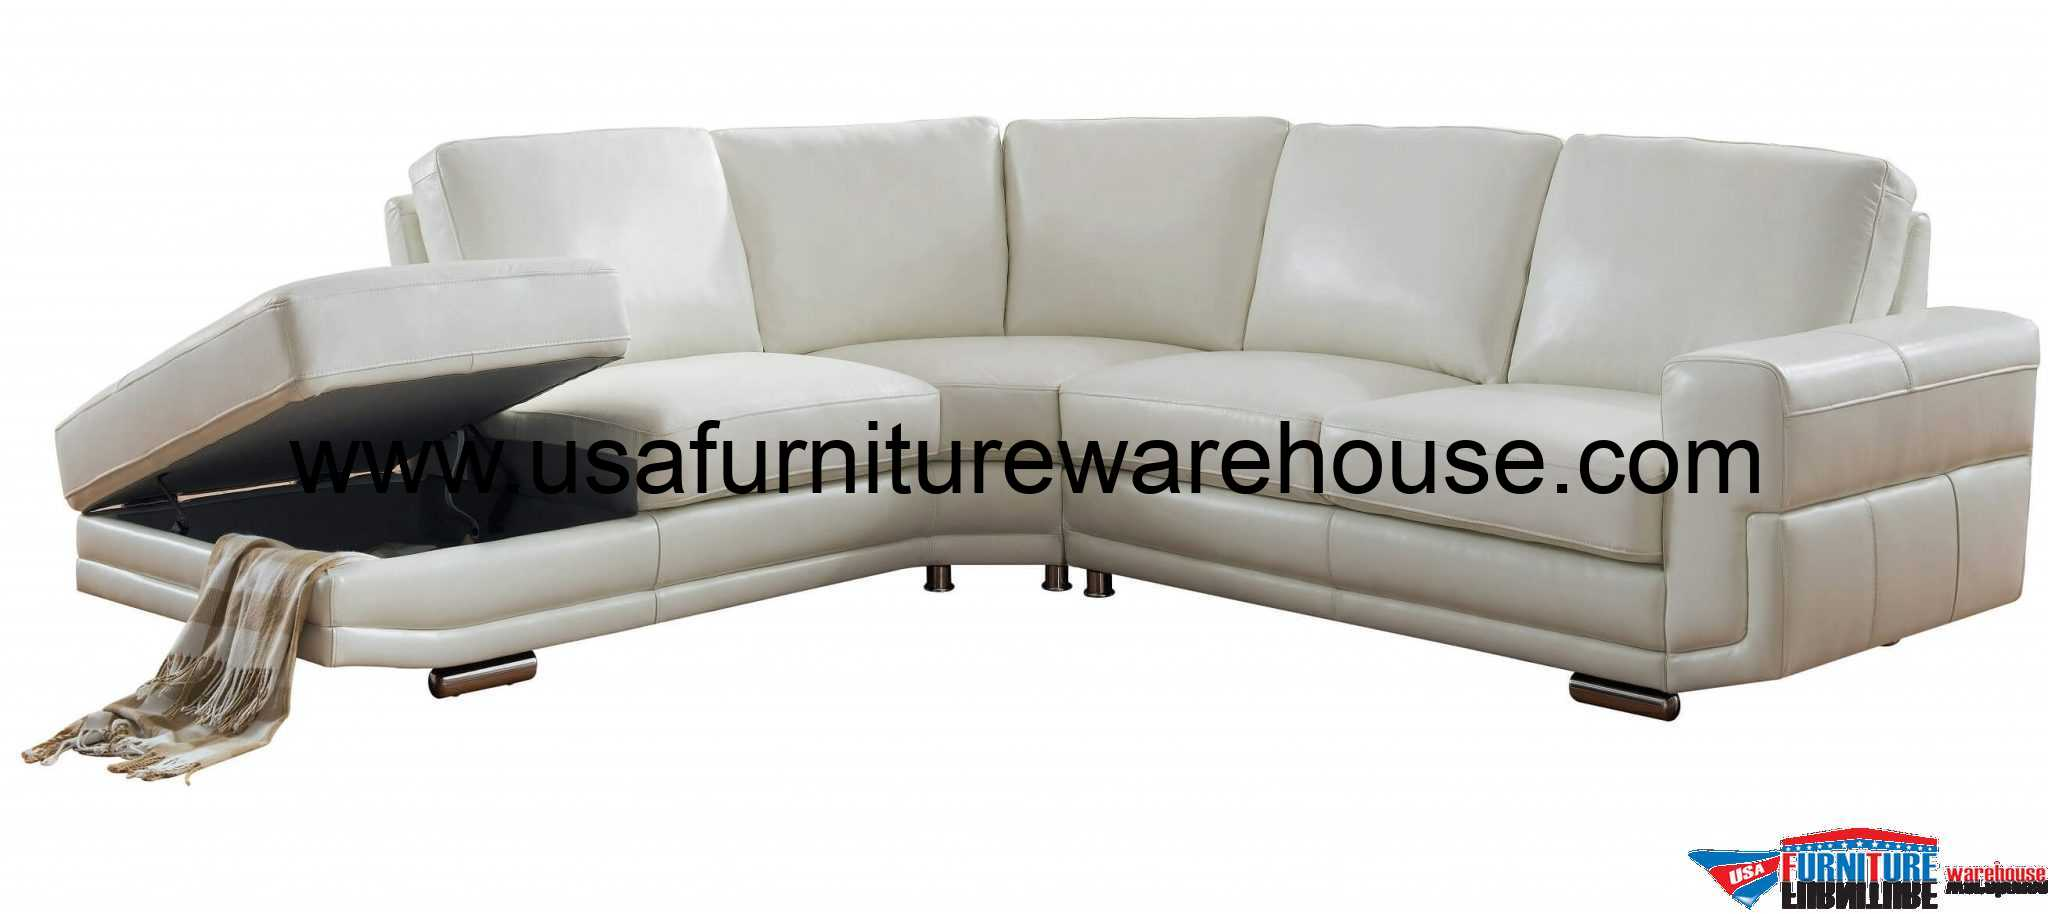 Sectional Sofas Warehouse Sale